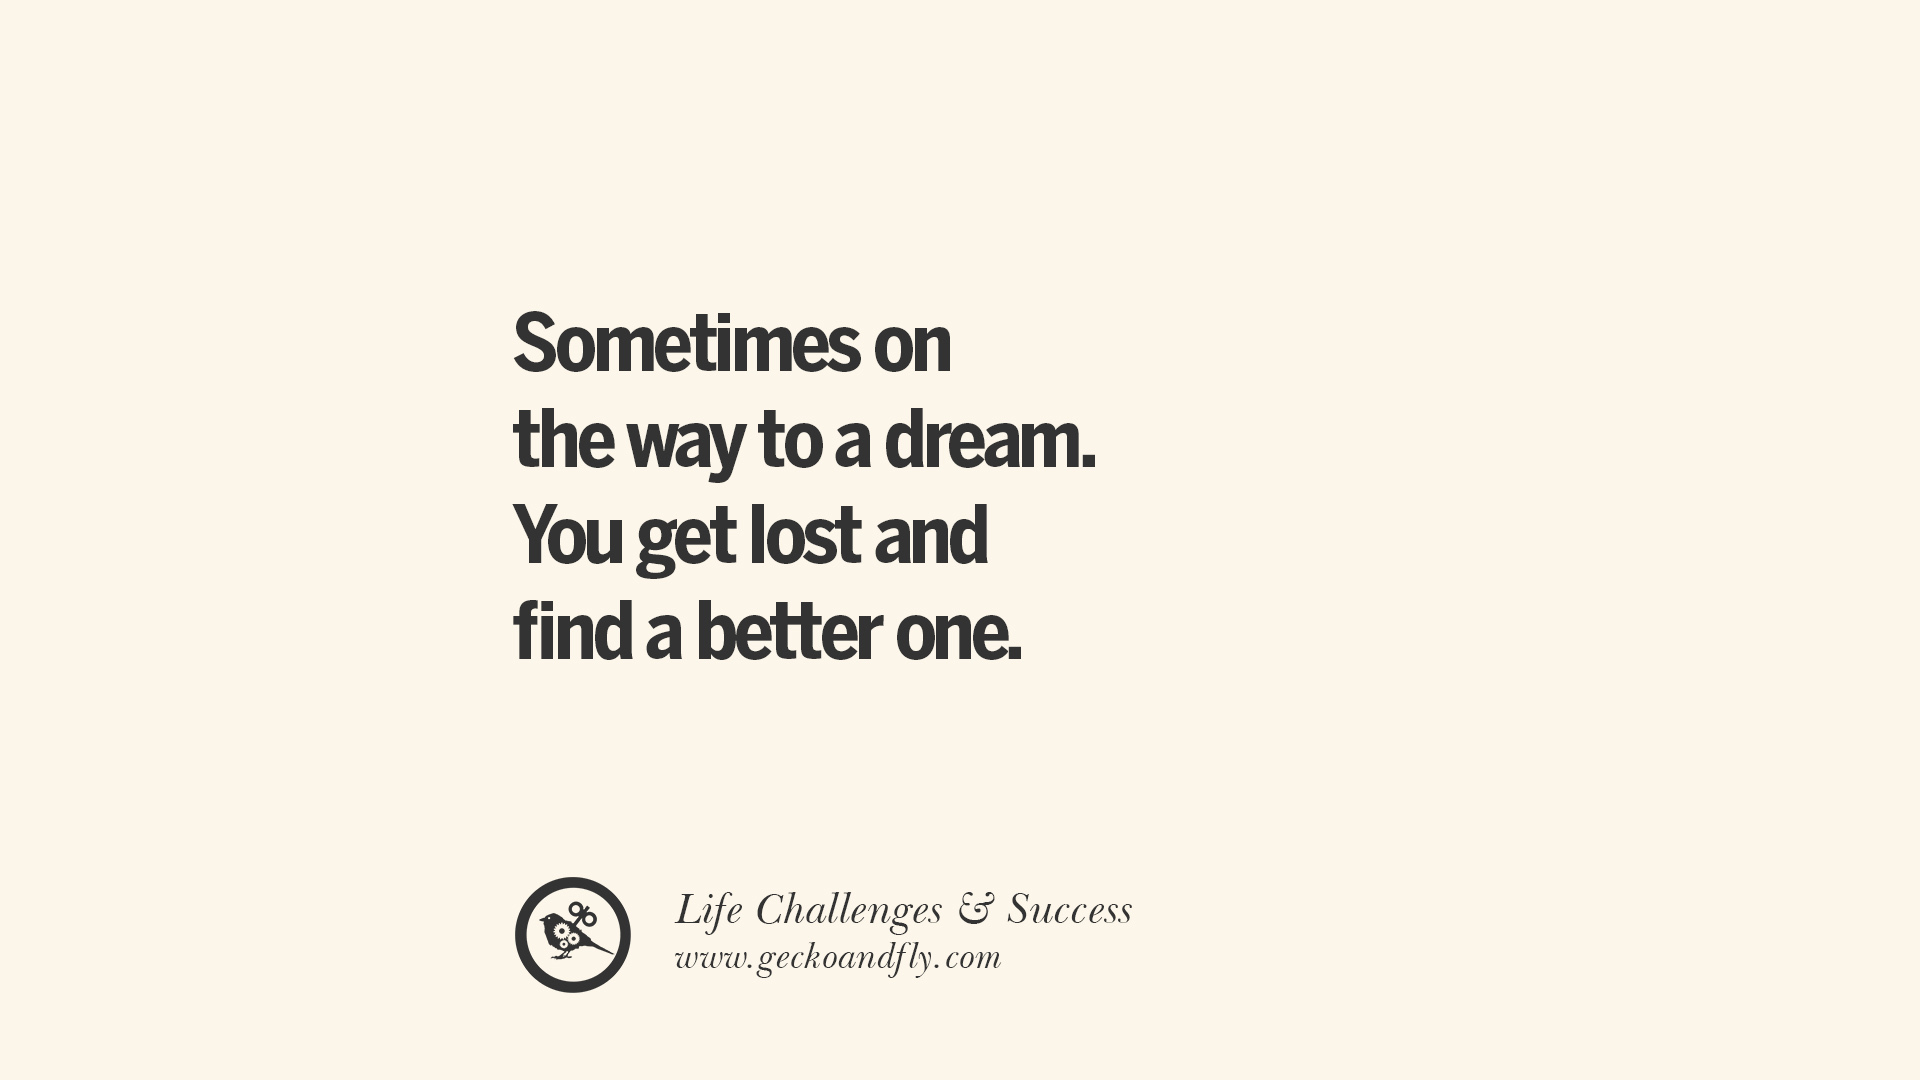 If You Don T Get Lost There S A Chance: 40 Inspirational Quotes About Life Challenges And The